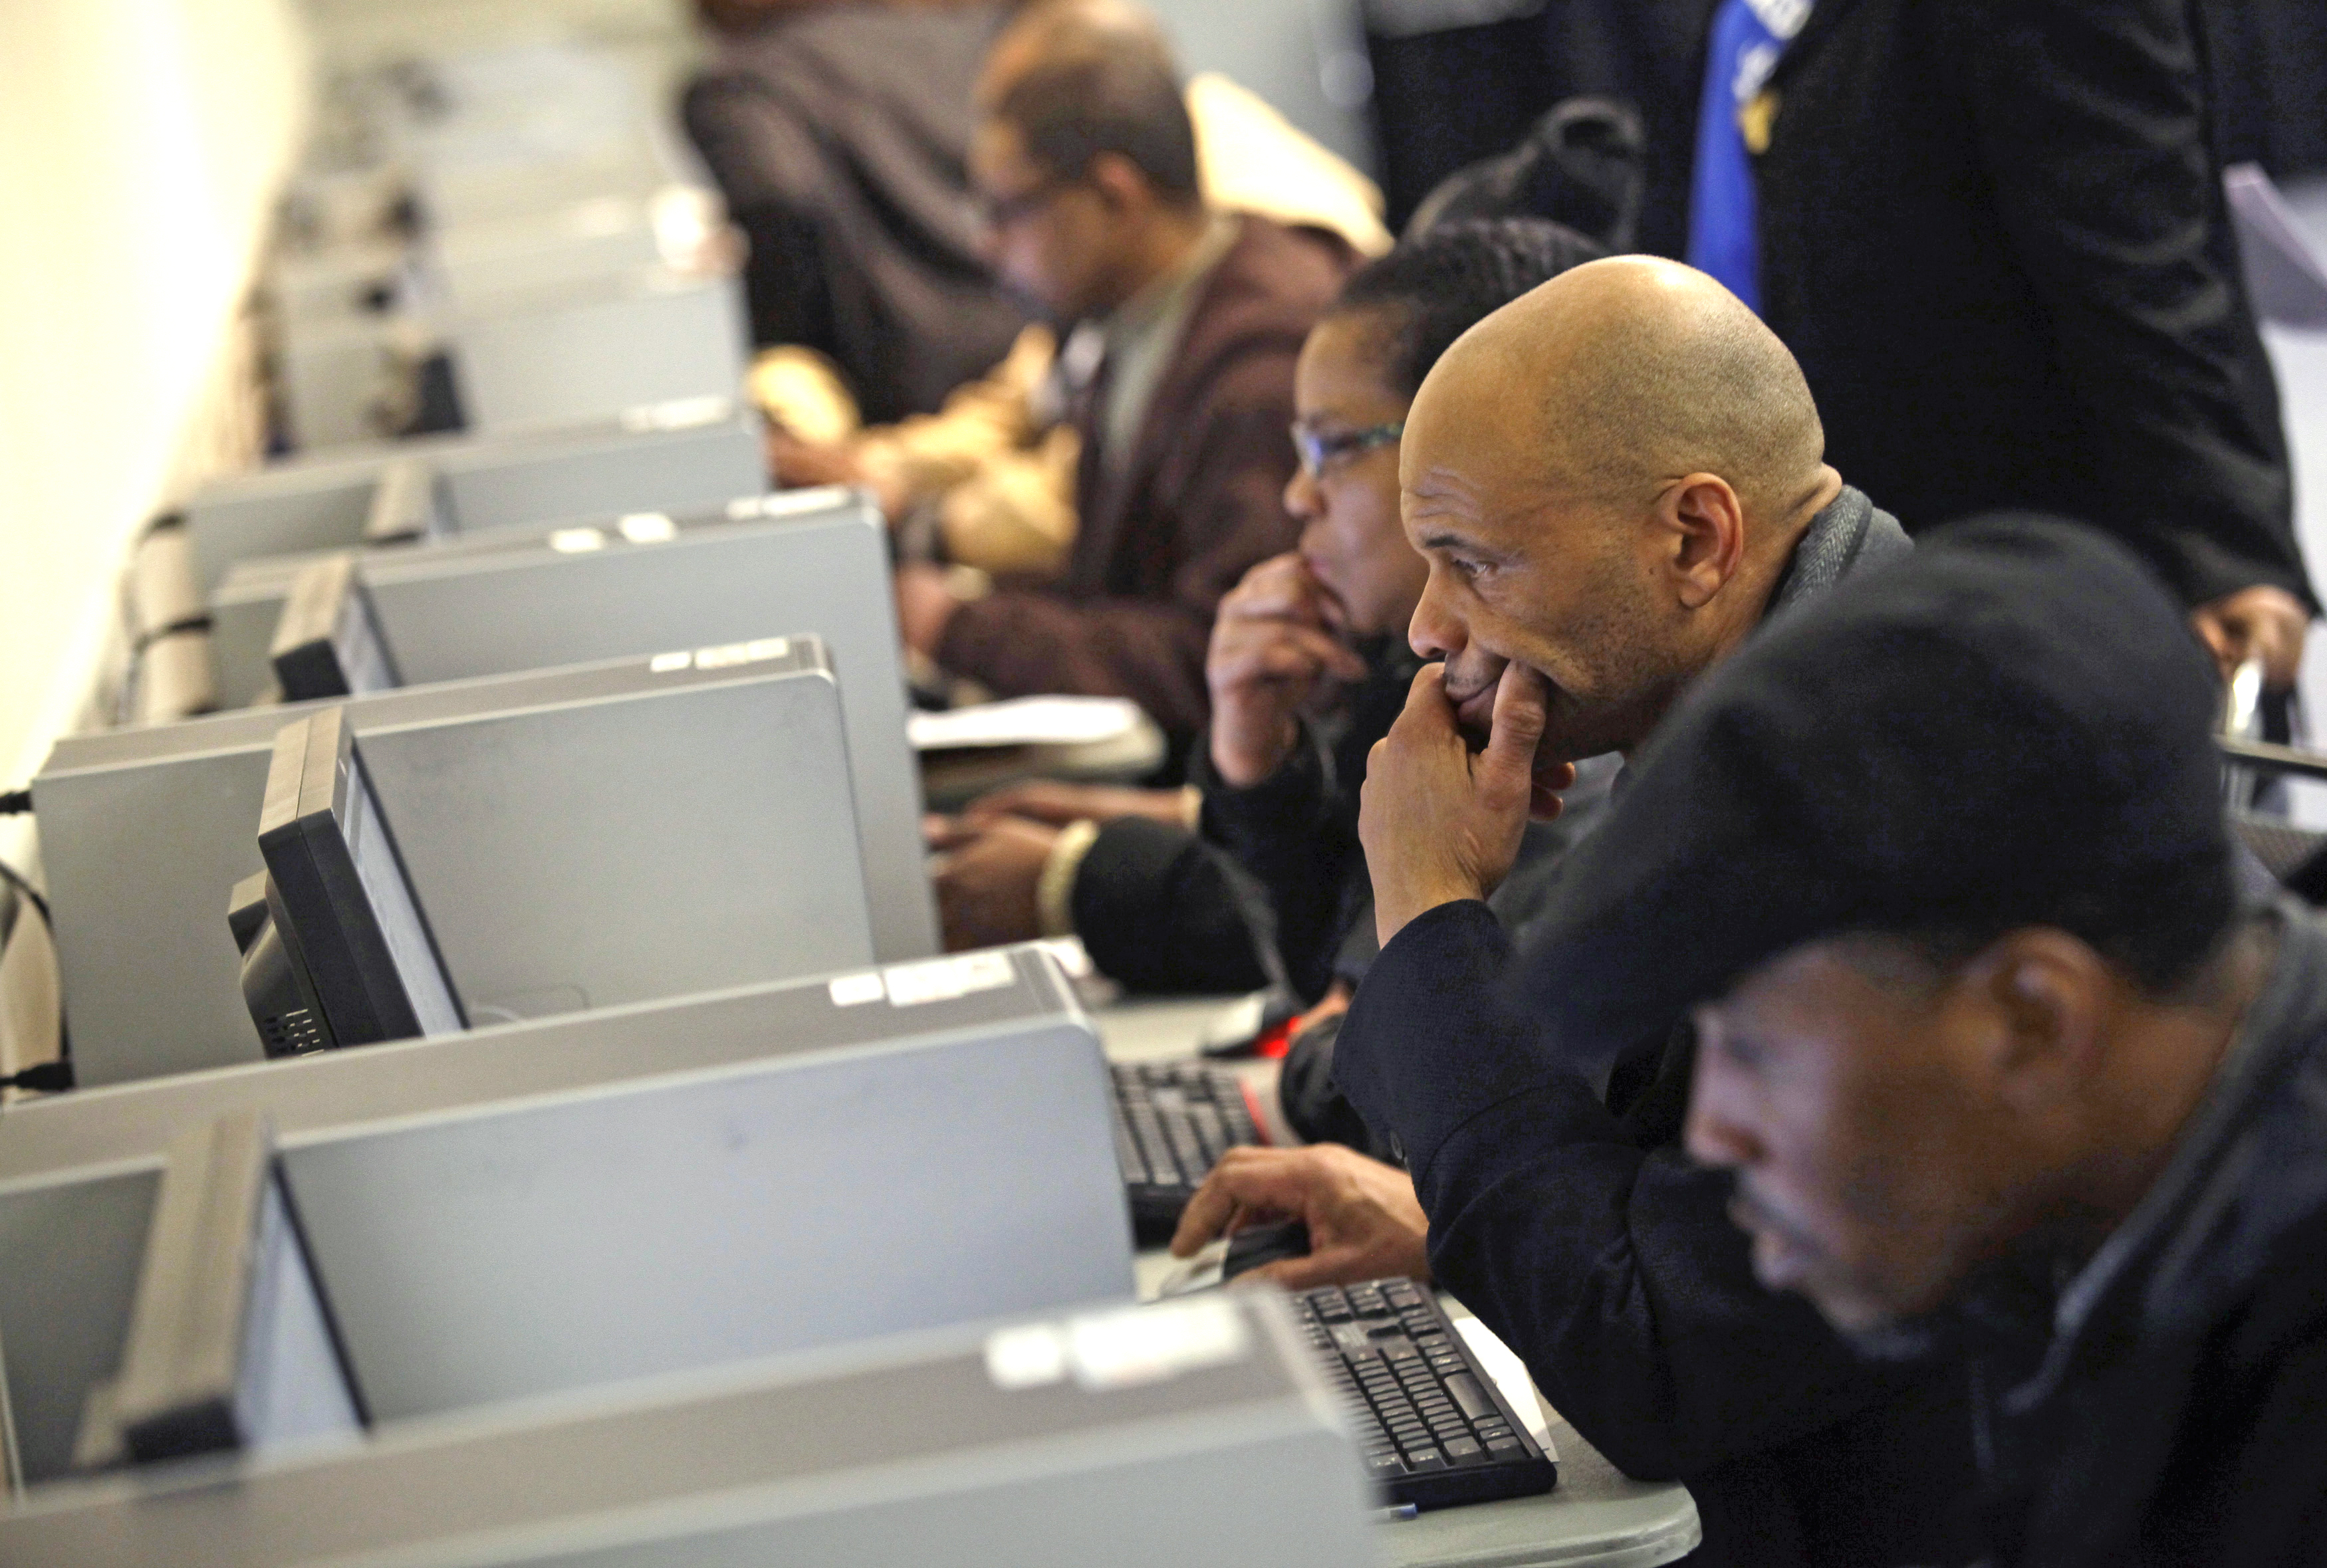 People use computers at a job fair in Detroit on March 1, 2014.